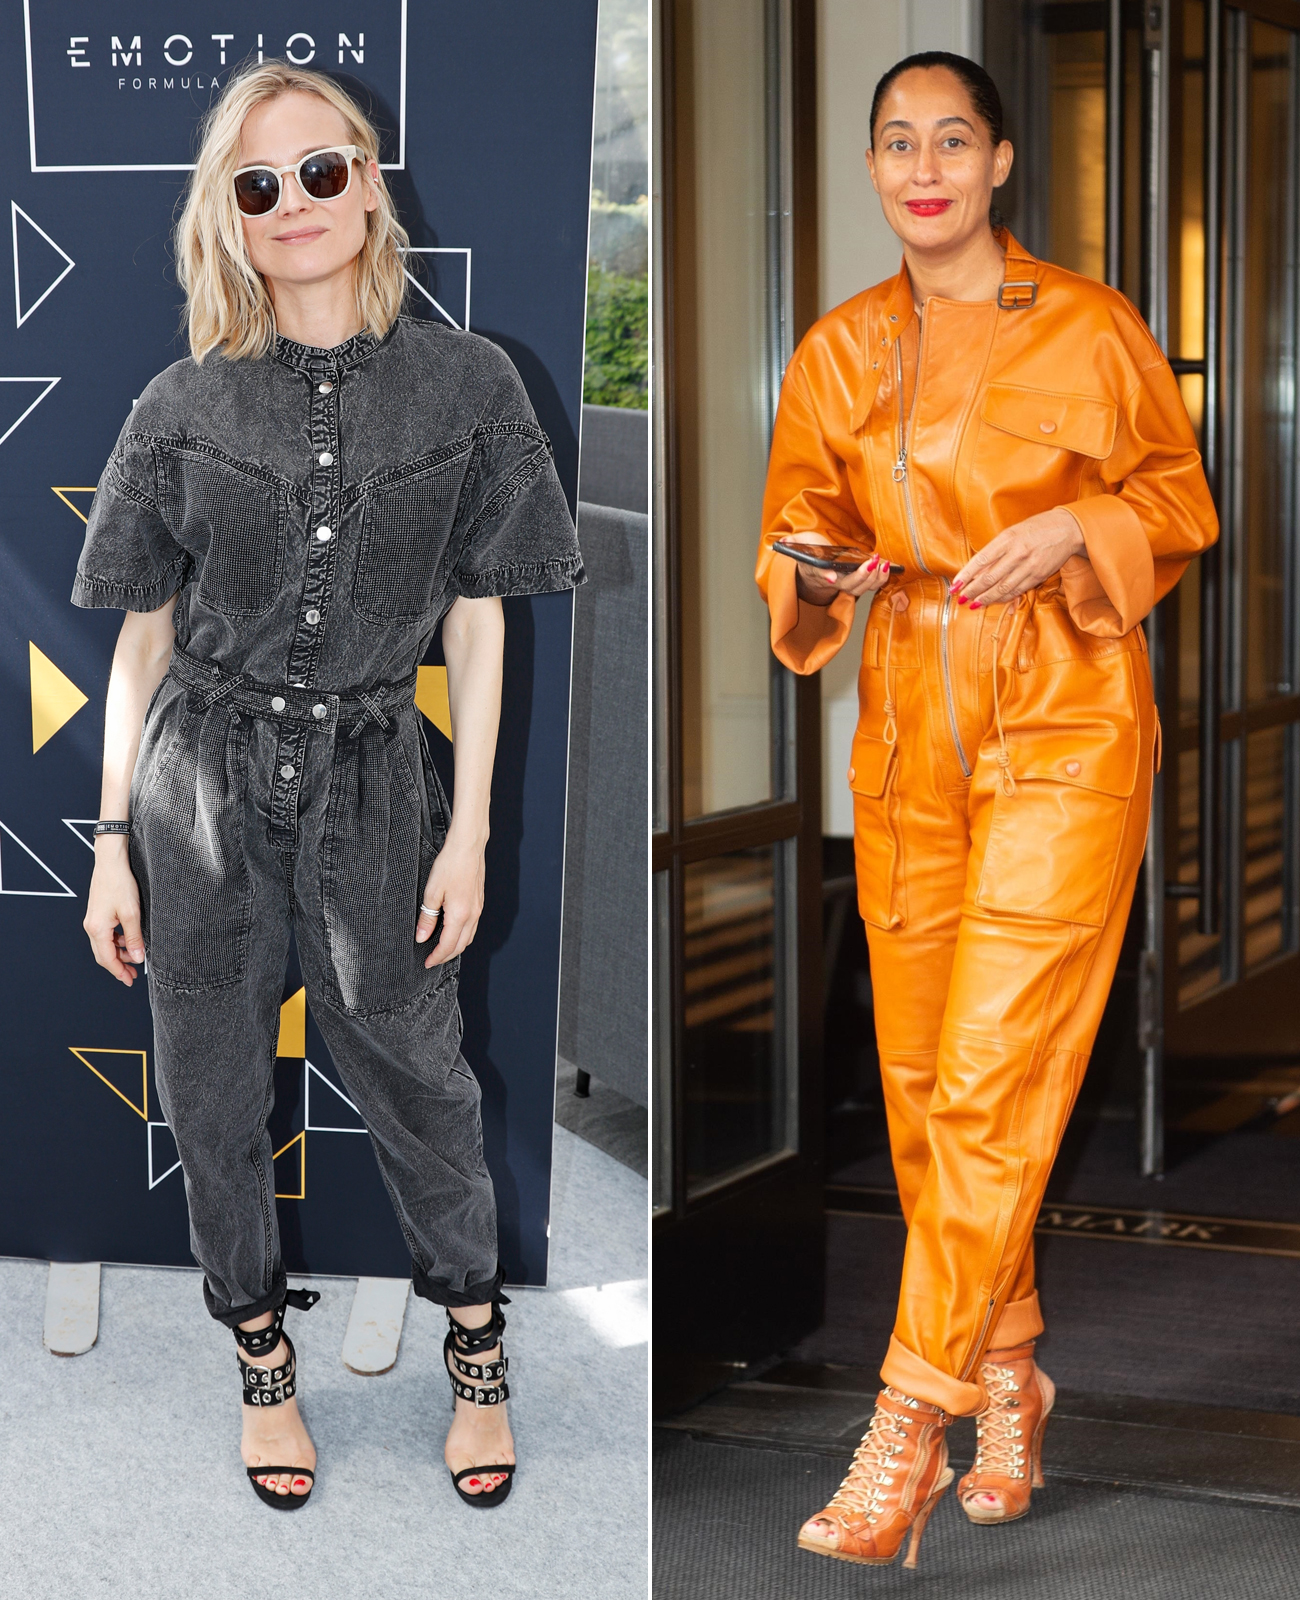 Our Celeb Muses: Diane Kruger in Isabel Marant and Tracee Ellis Ross in Salvatore Ferragamo